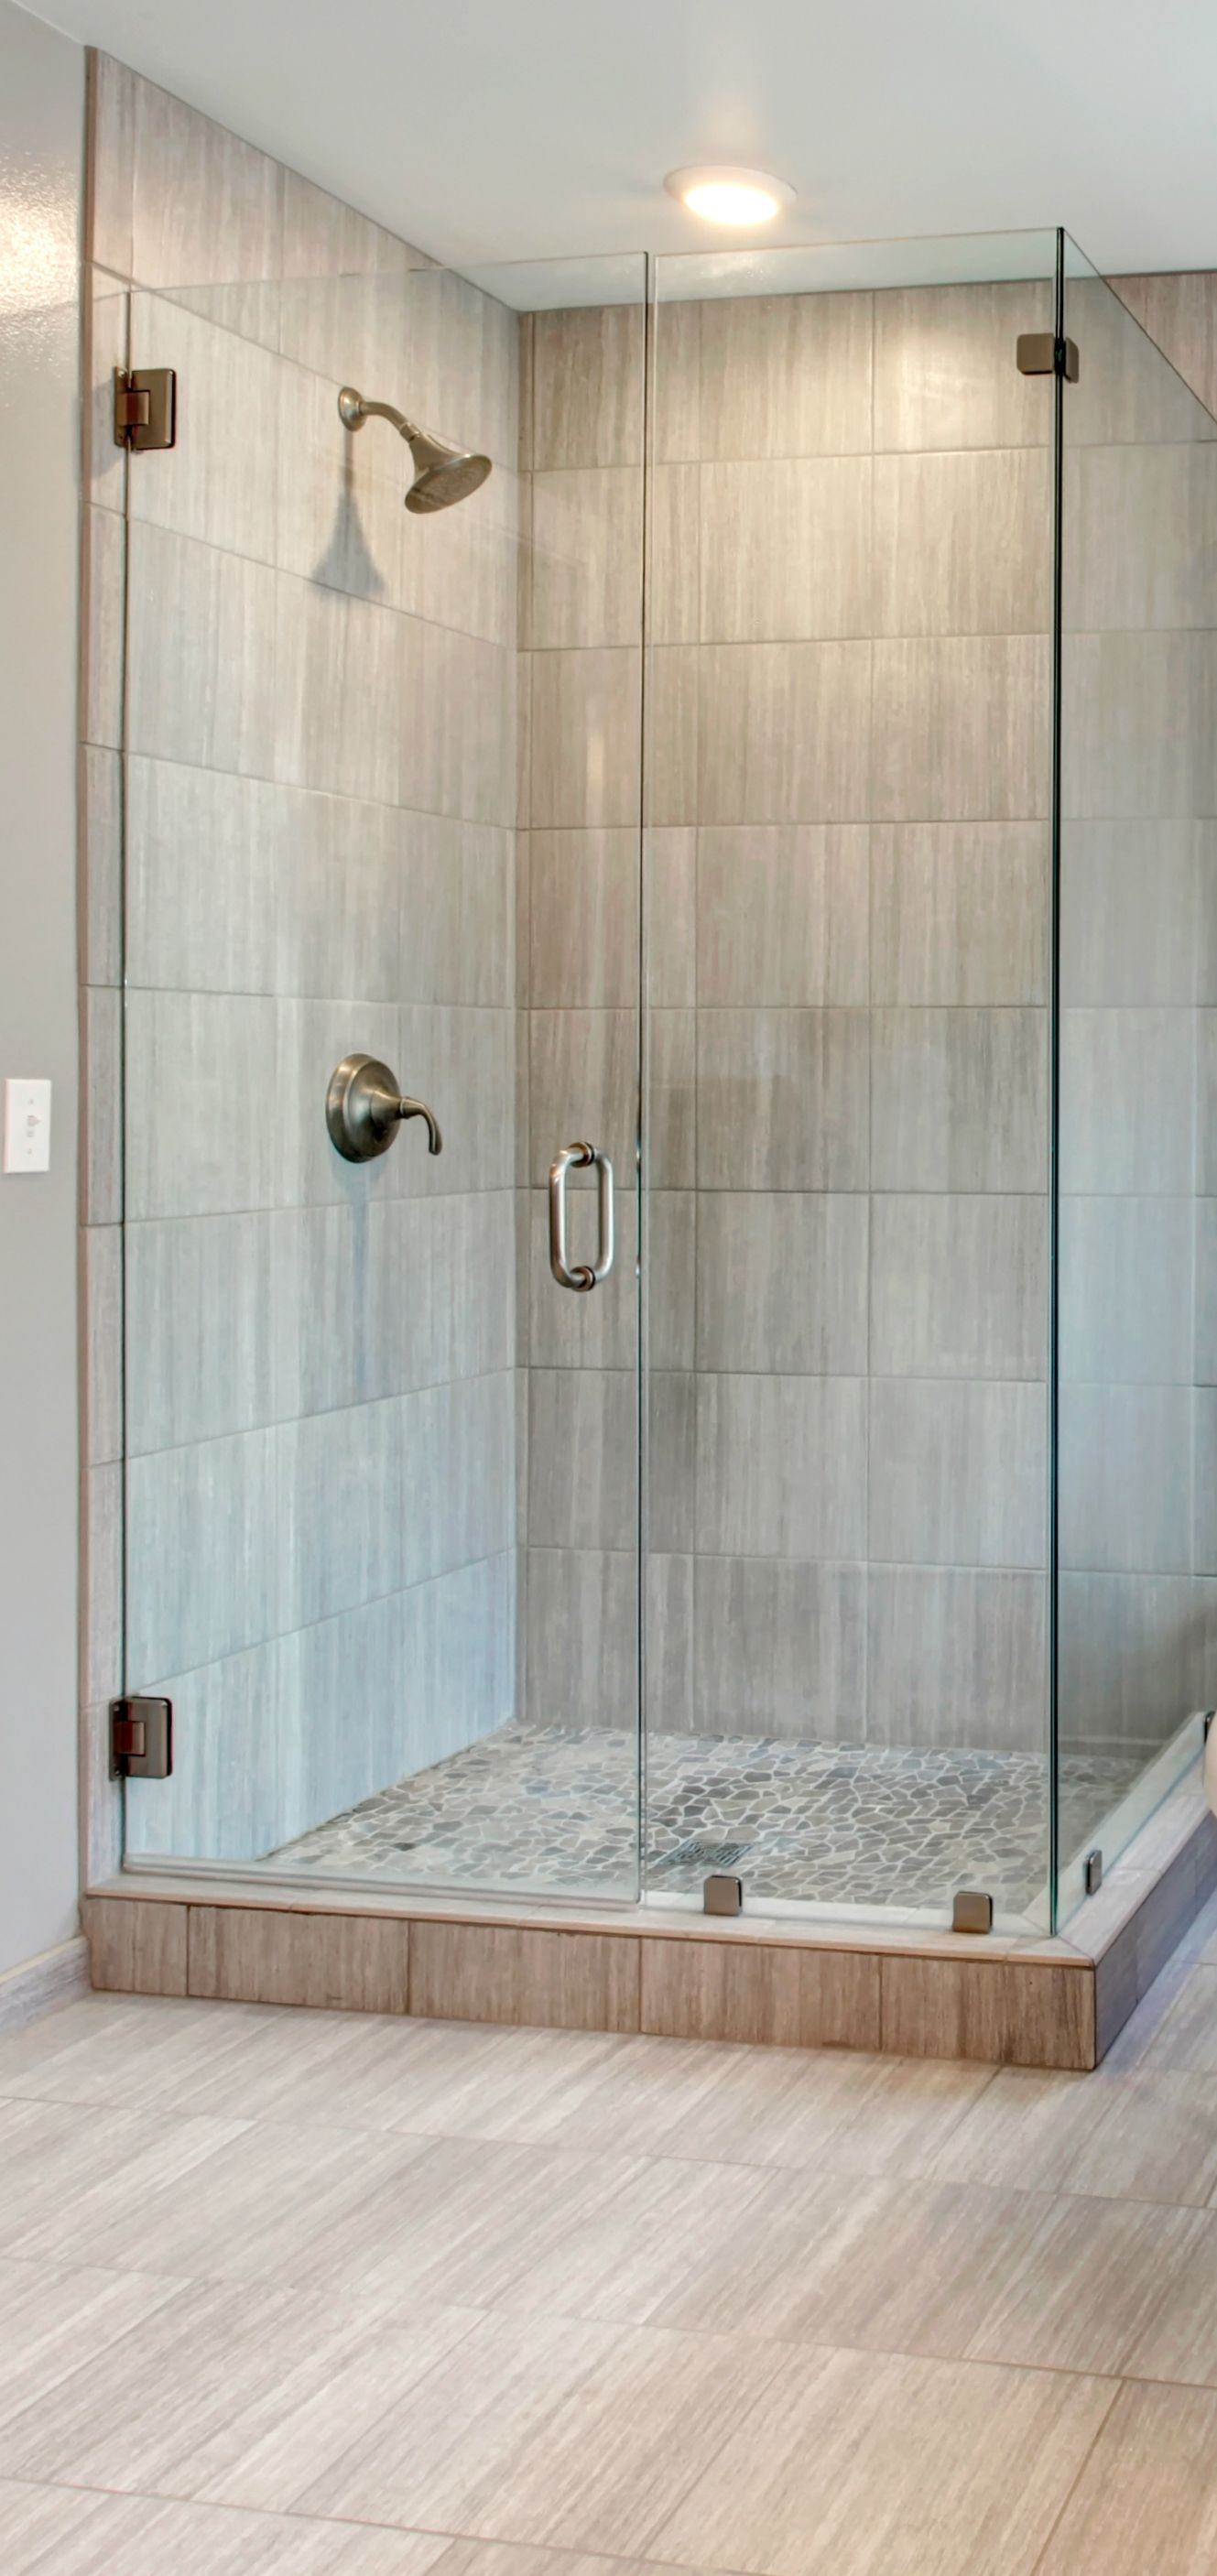 Showers Corner Walk In Shower Ideas For Simple Small Bathroom With Natural Stone Shower Pan Bathroom Remodel Shower Remodel Shower Stall Bathroom Shower Stalls